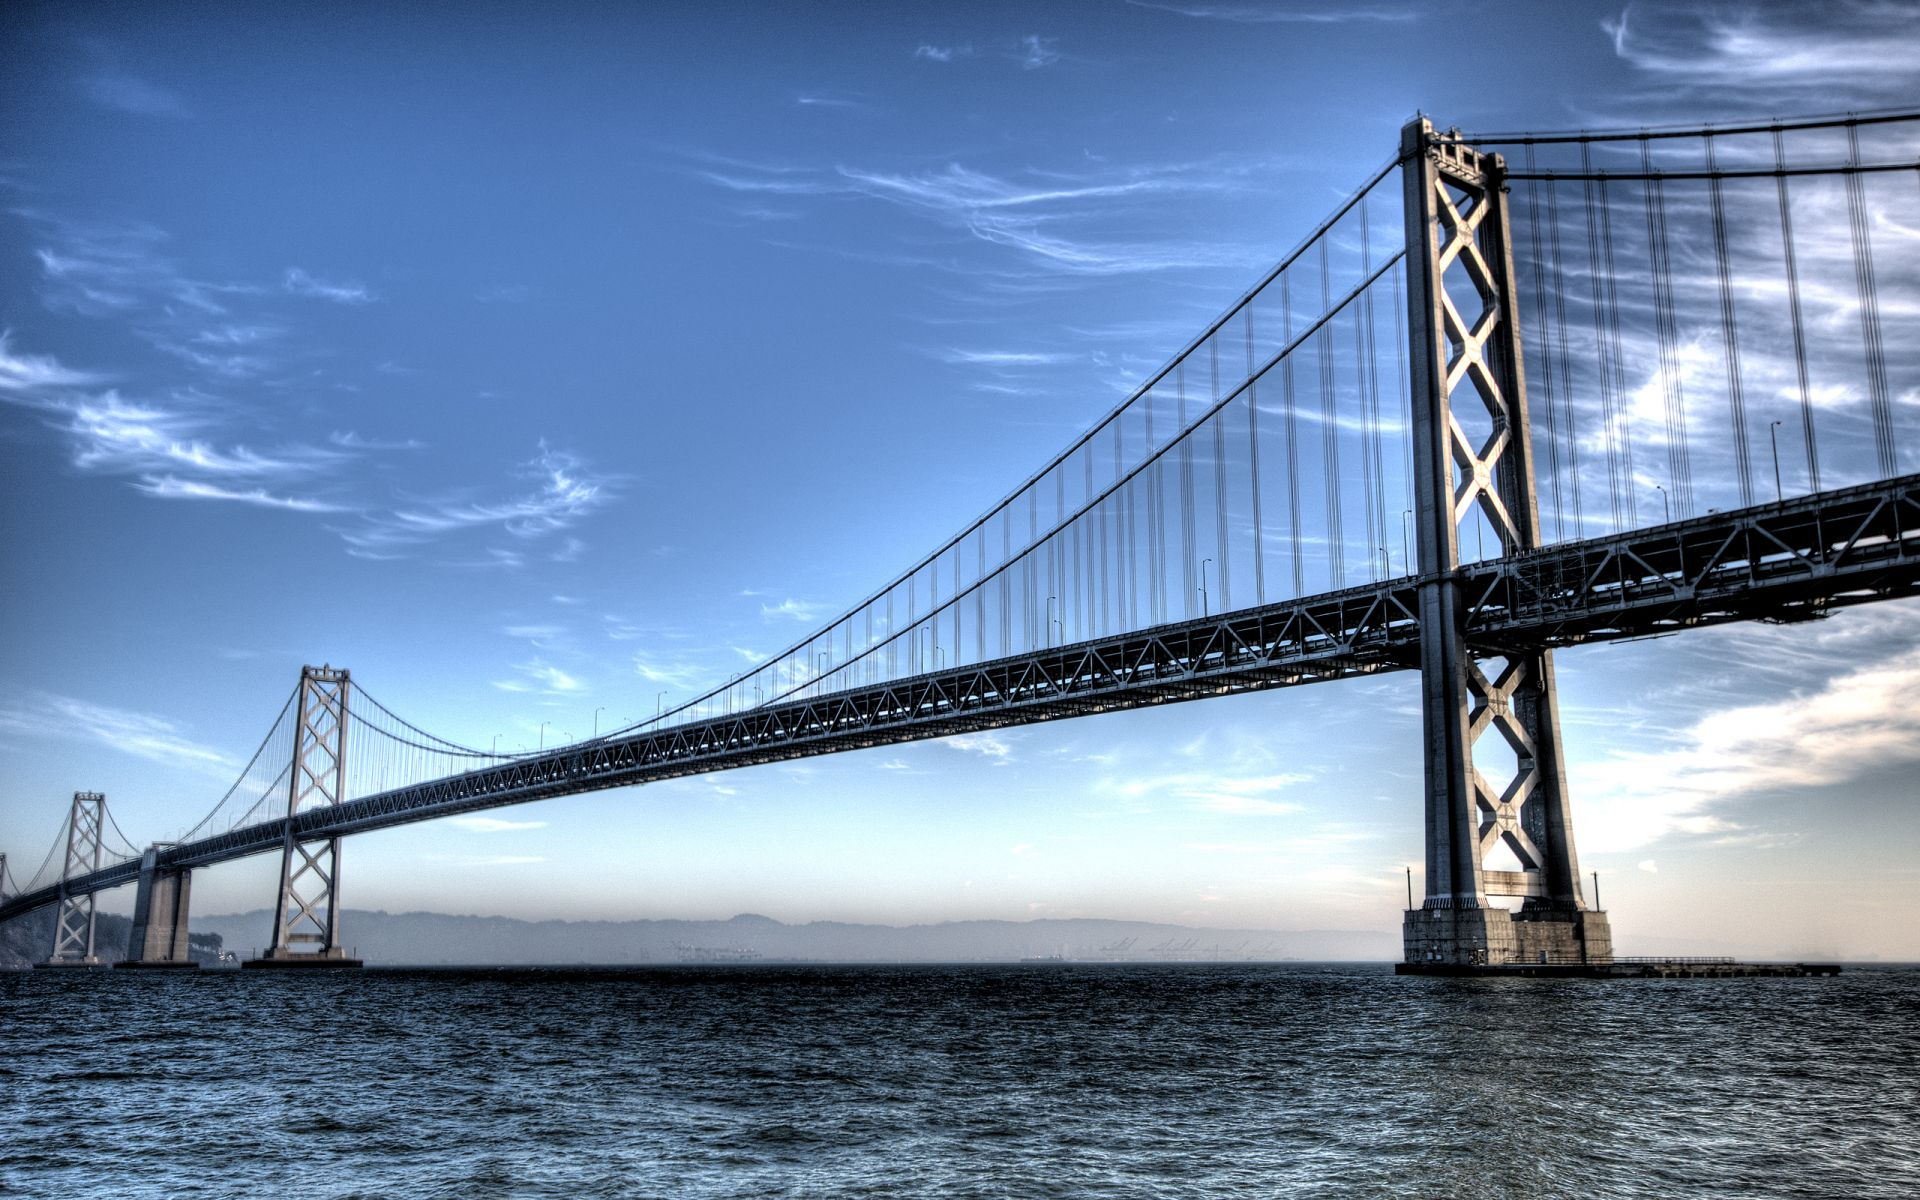 Bridge Wallpaper Free Download